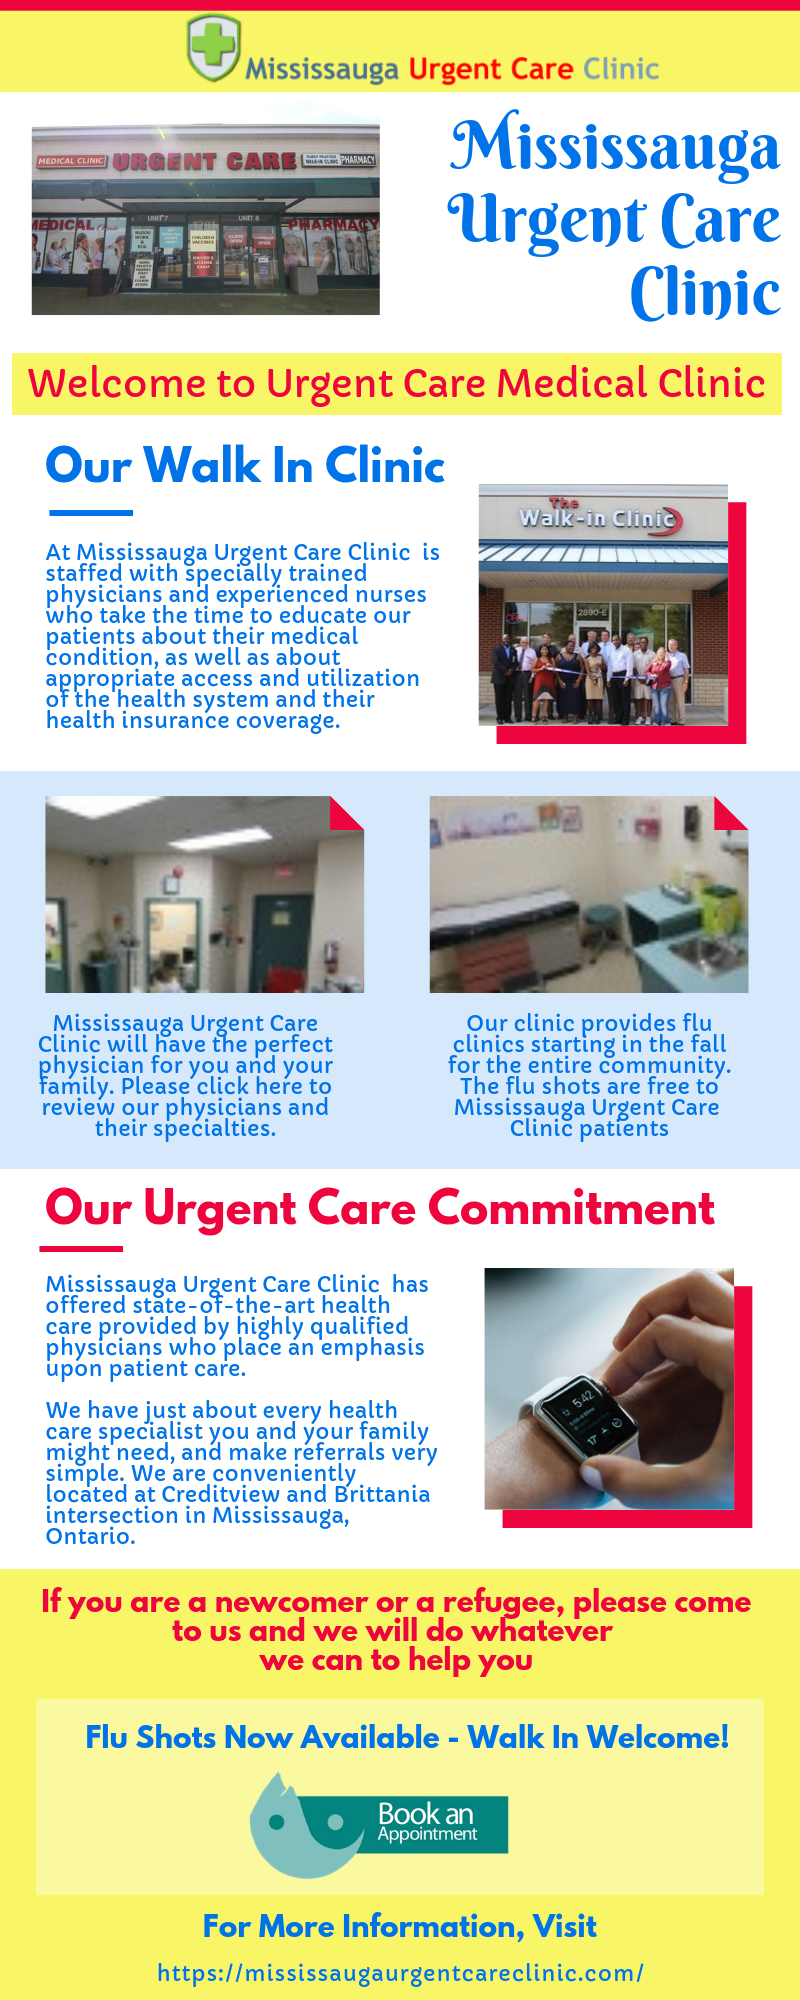 Go Through This Infographic And Know Why Mississauga Urgent Care